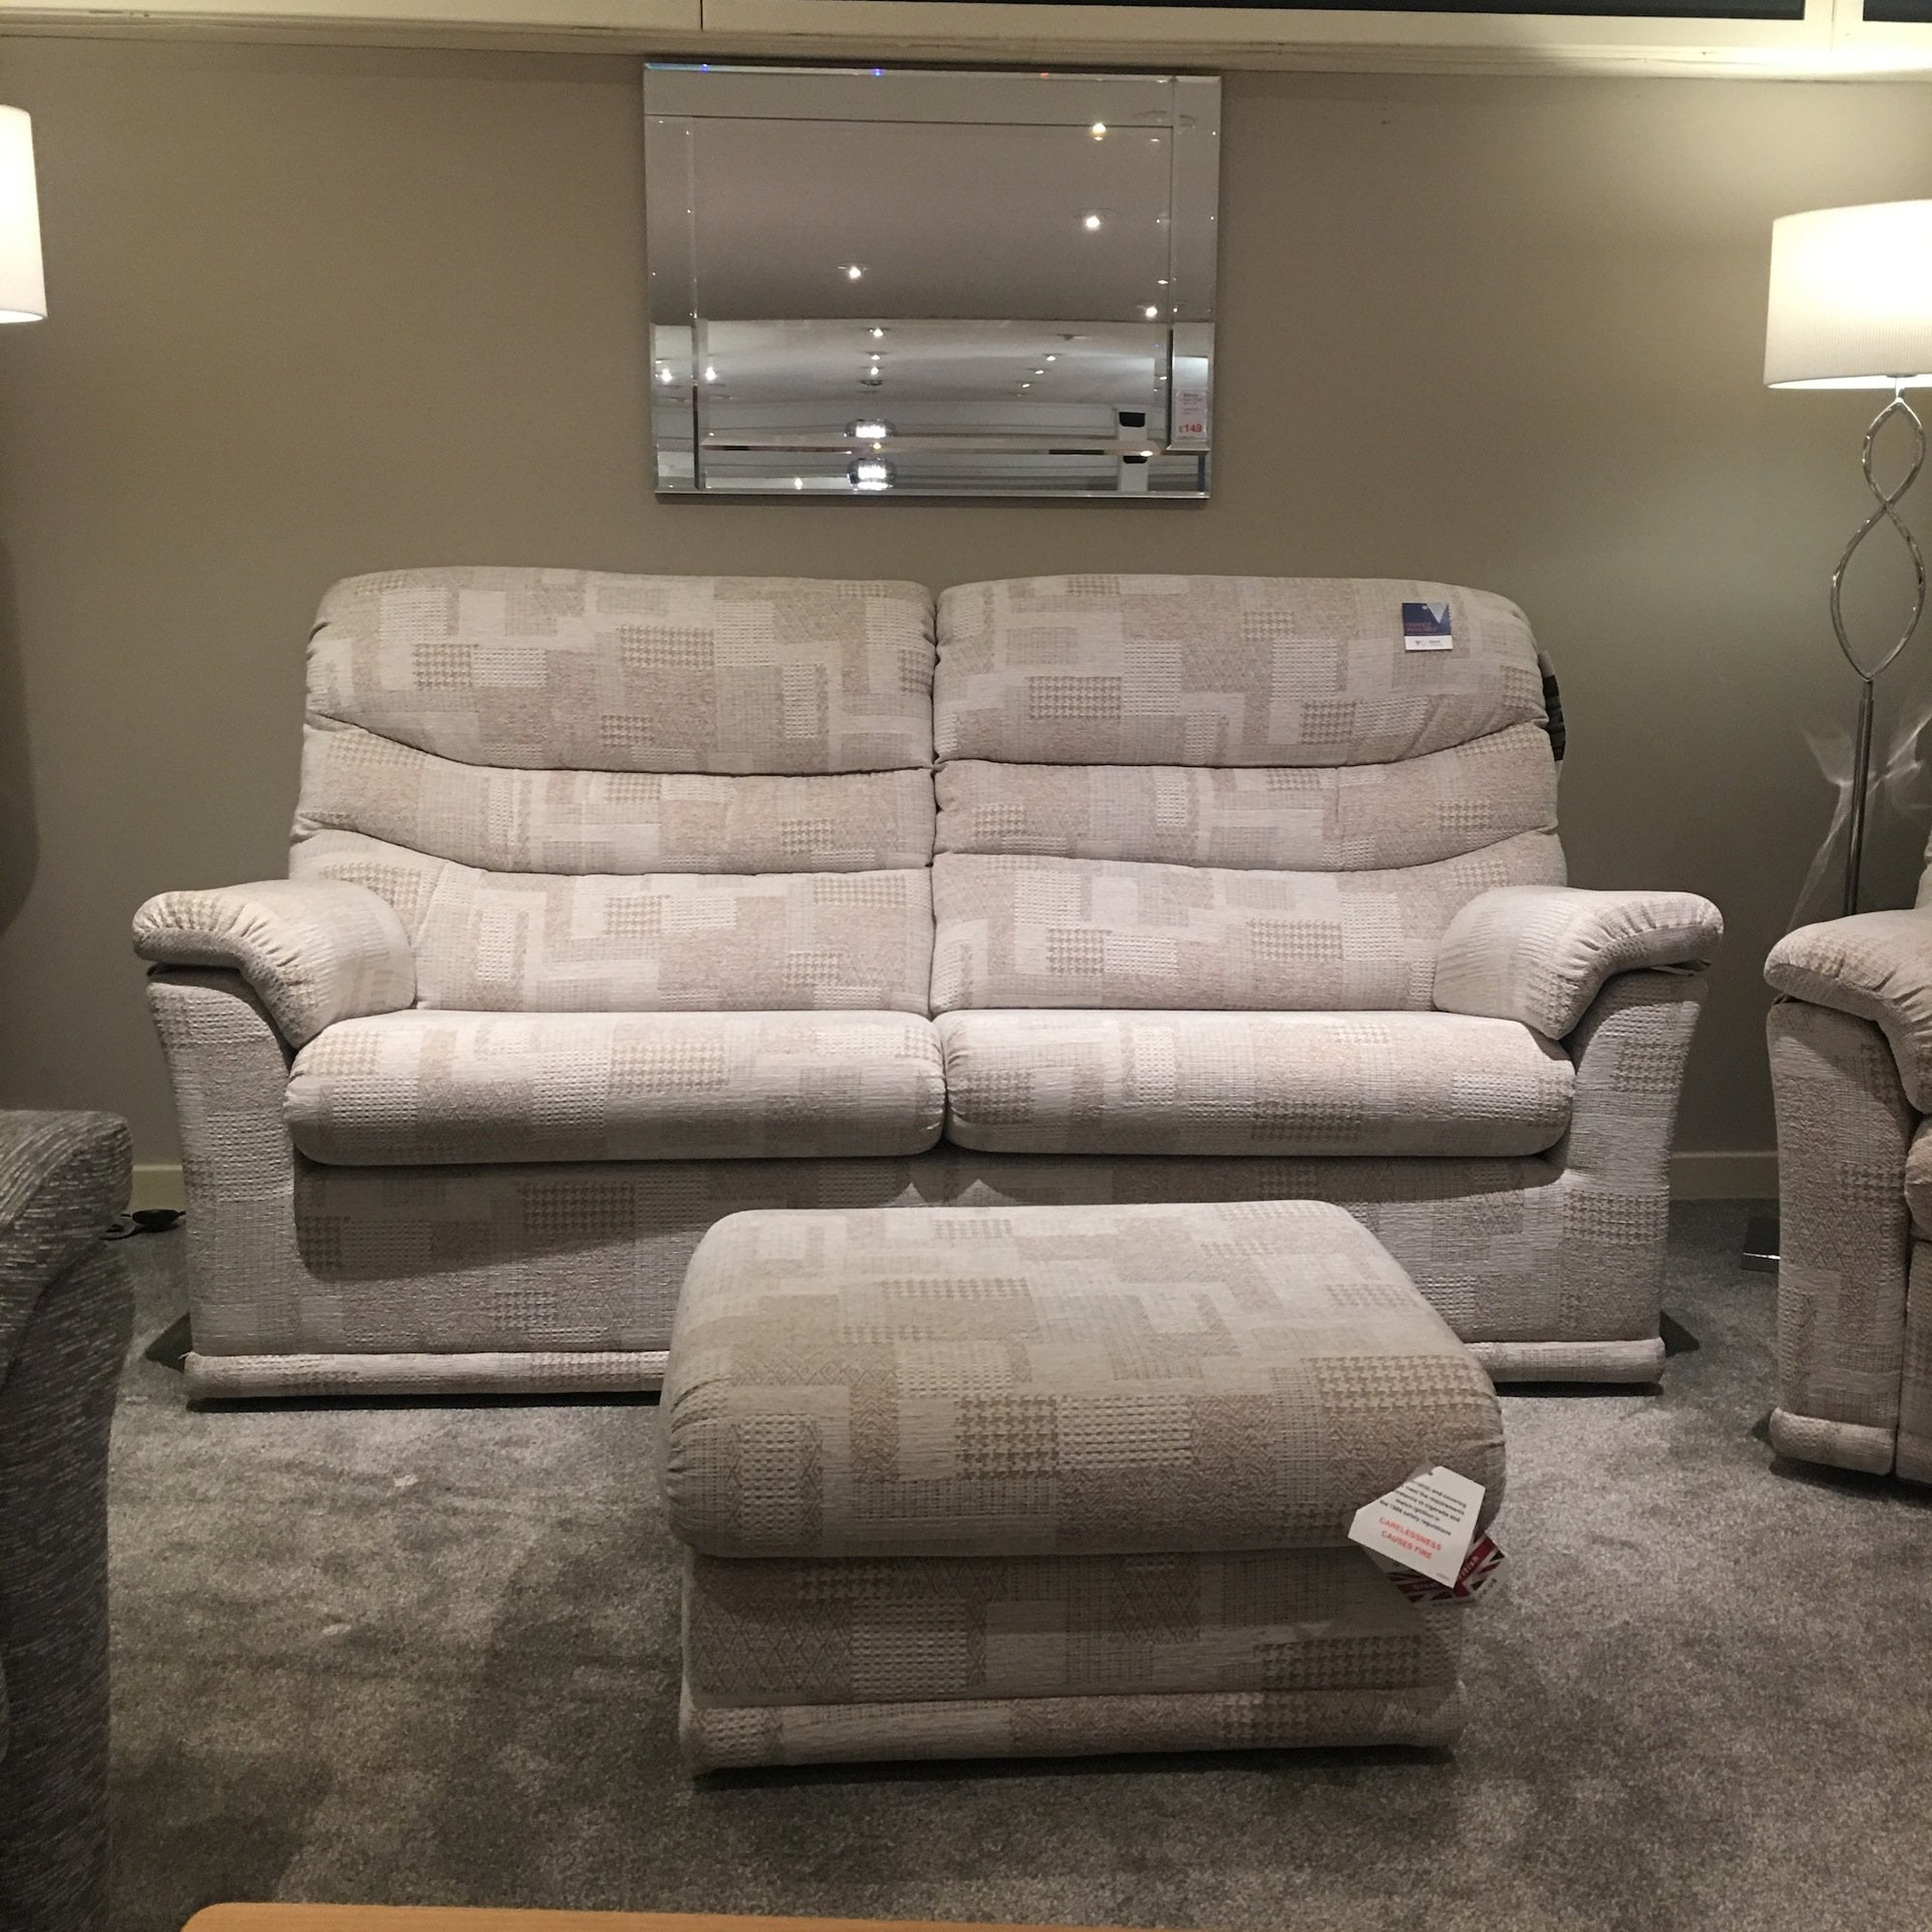 G Plan Malvern 3 Seater + Recliner & Stool Clearance Local